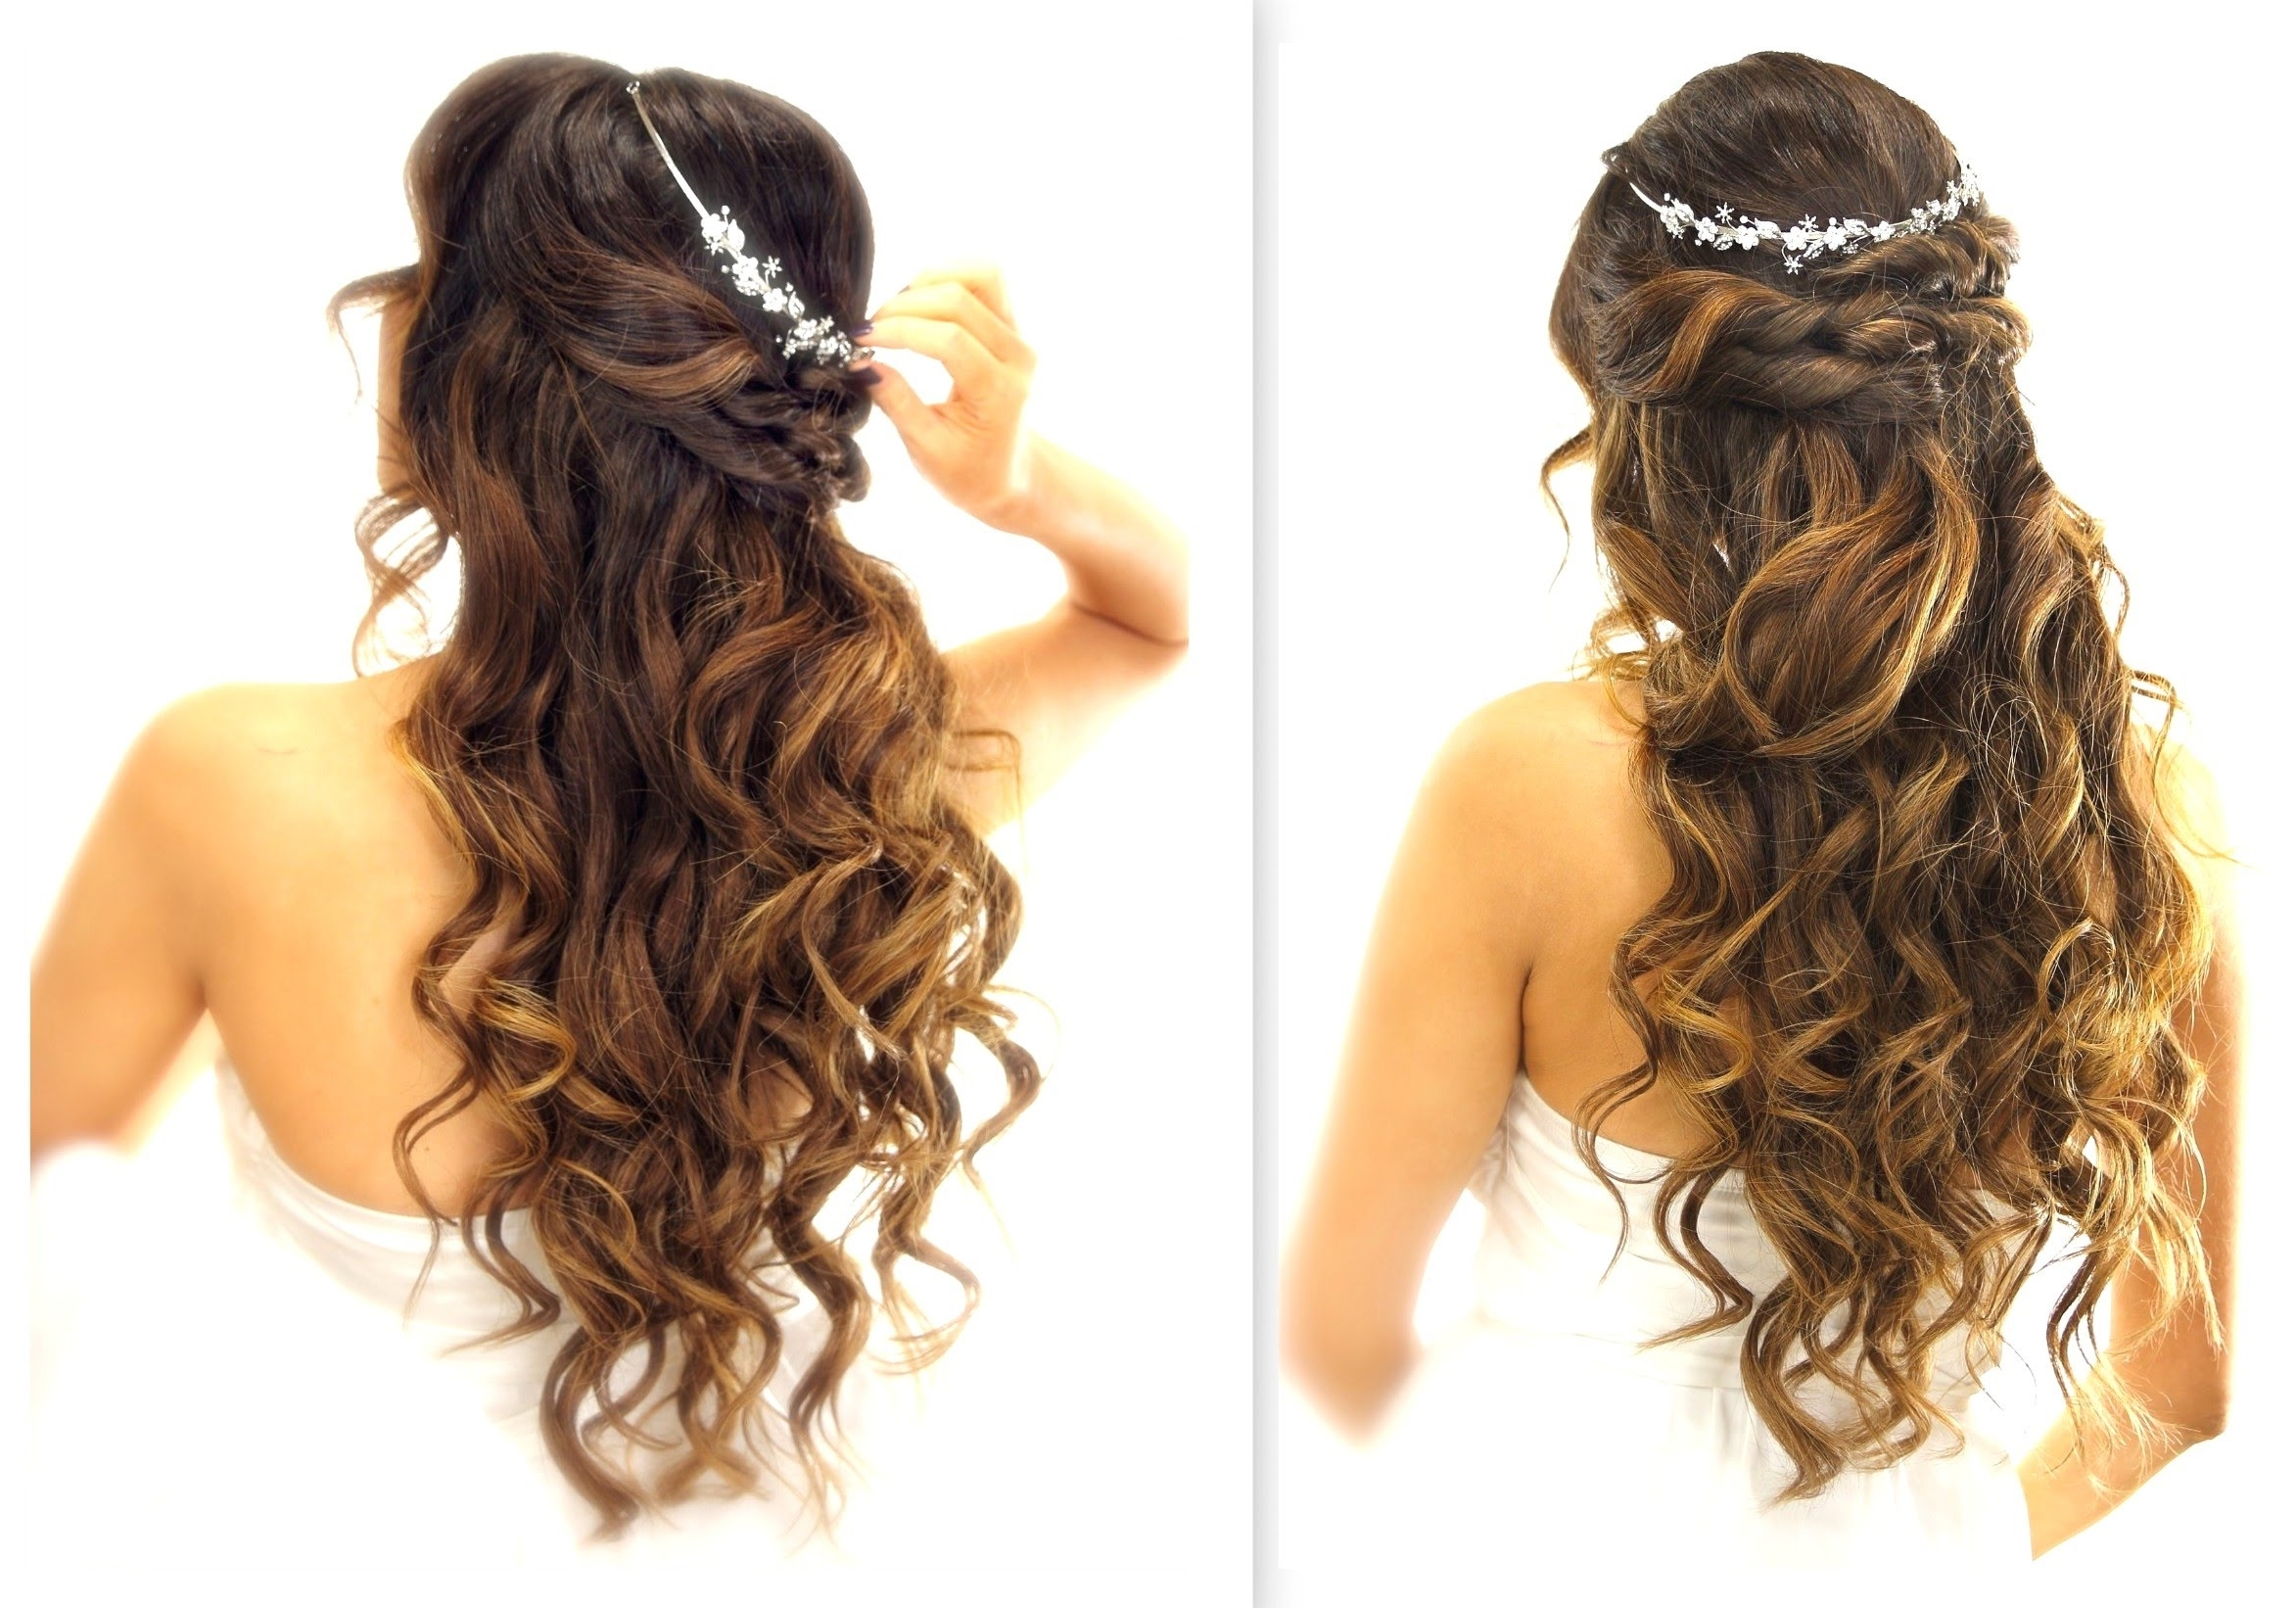 Bridal Hairstyles Intended For Newest Half Updo Wedding Hairstyles (View 3 of 15)